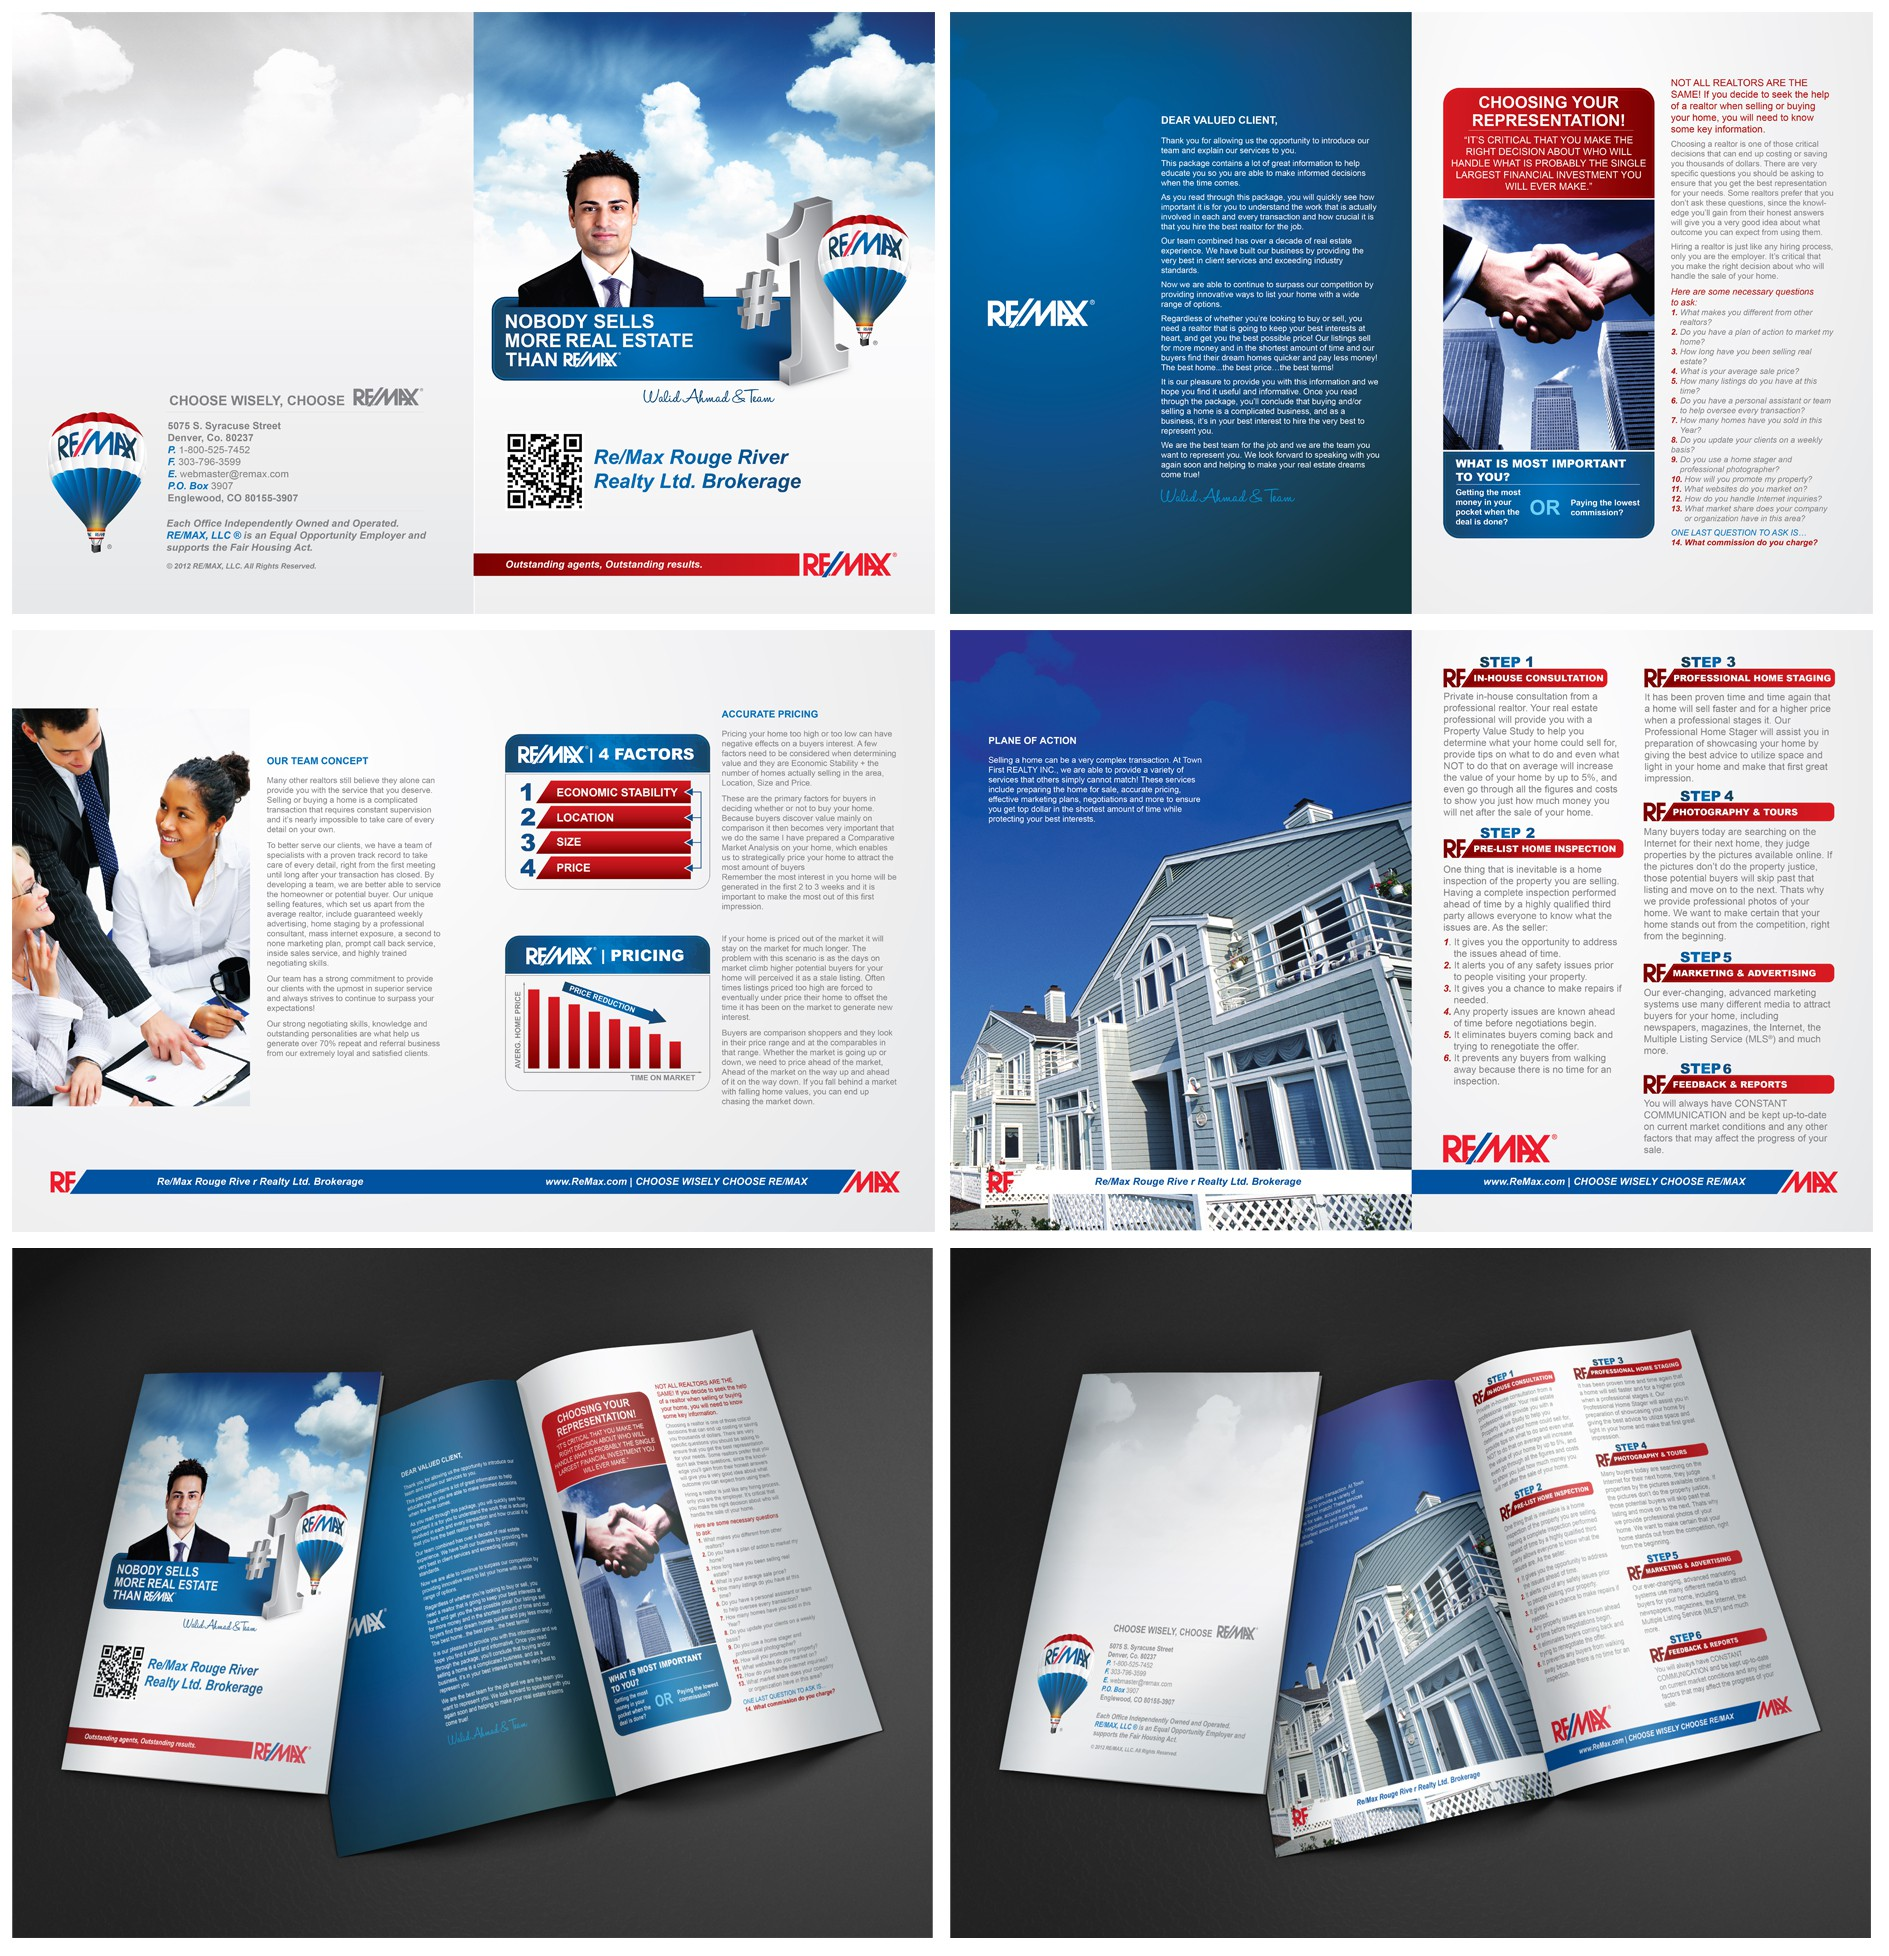 Help Re/Max Rouge River Realty Ltd. Brokerage  with a new brochure design